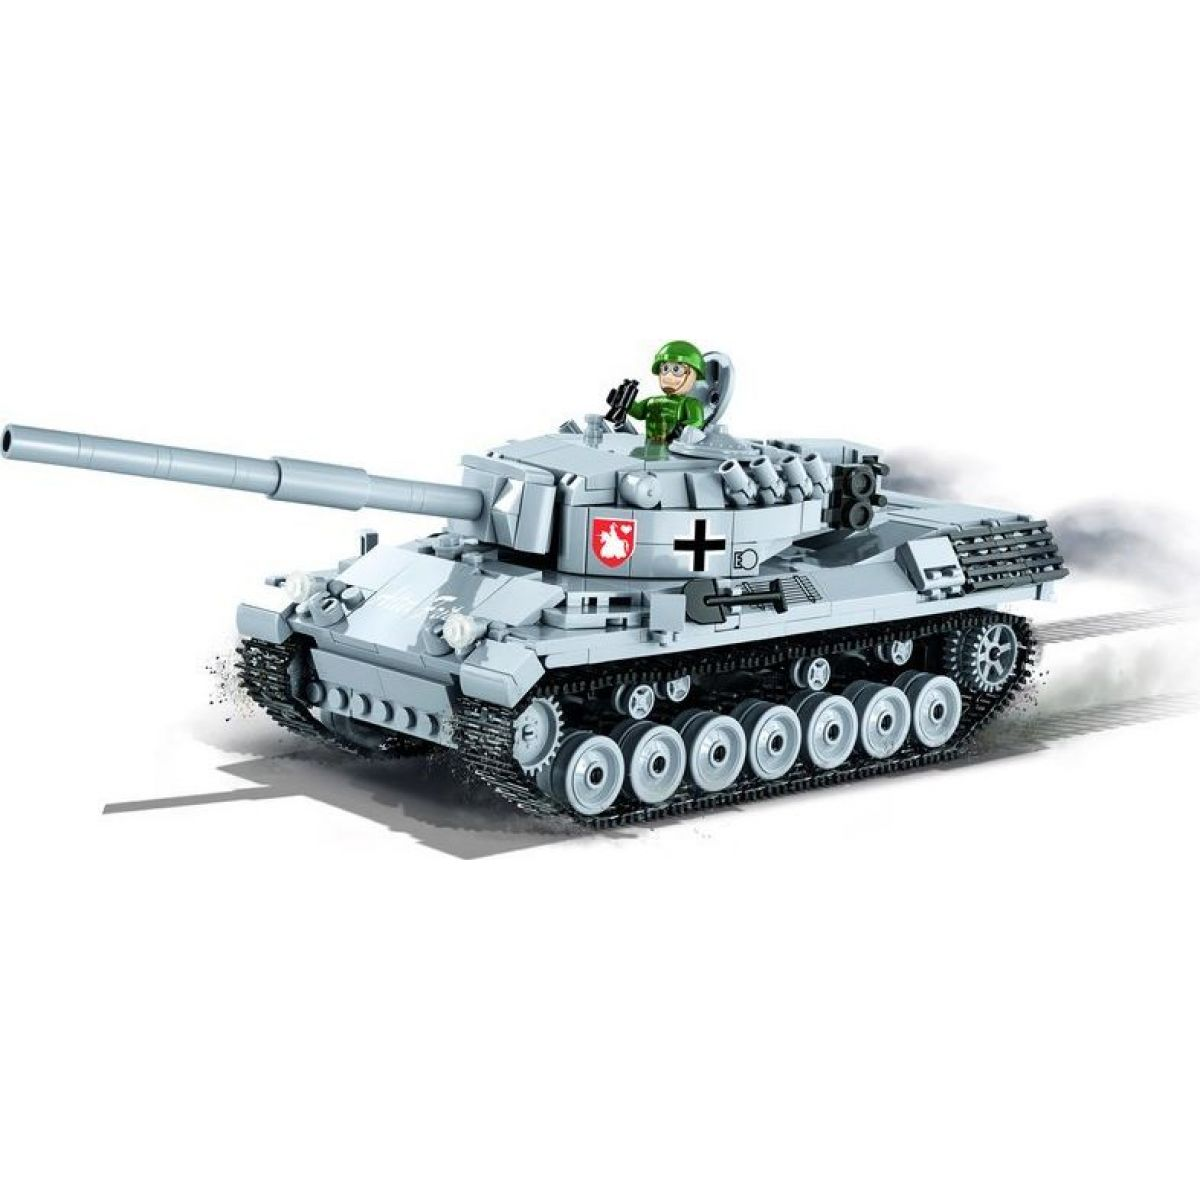 Cobi Malá armáda 3037 World of Tanks Leopard I